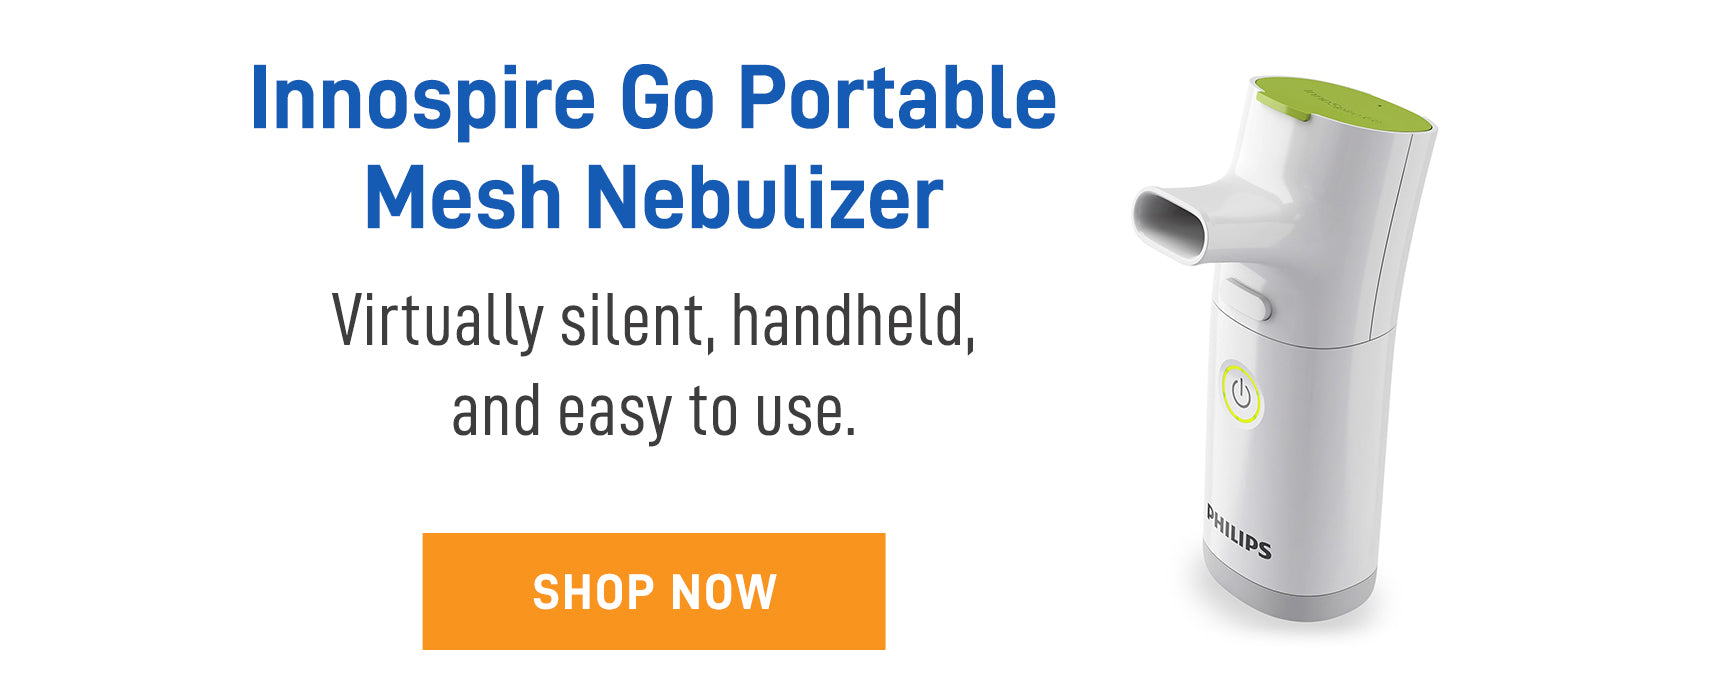 Innospire Go Portable mesh Nebulizer for on-the-go QUALITY treatments